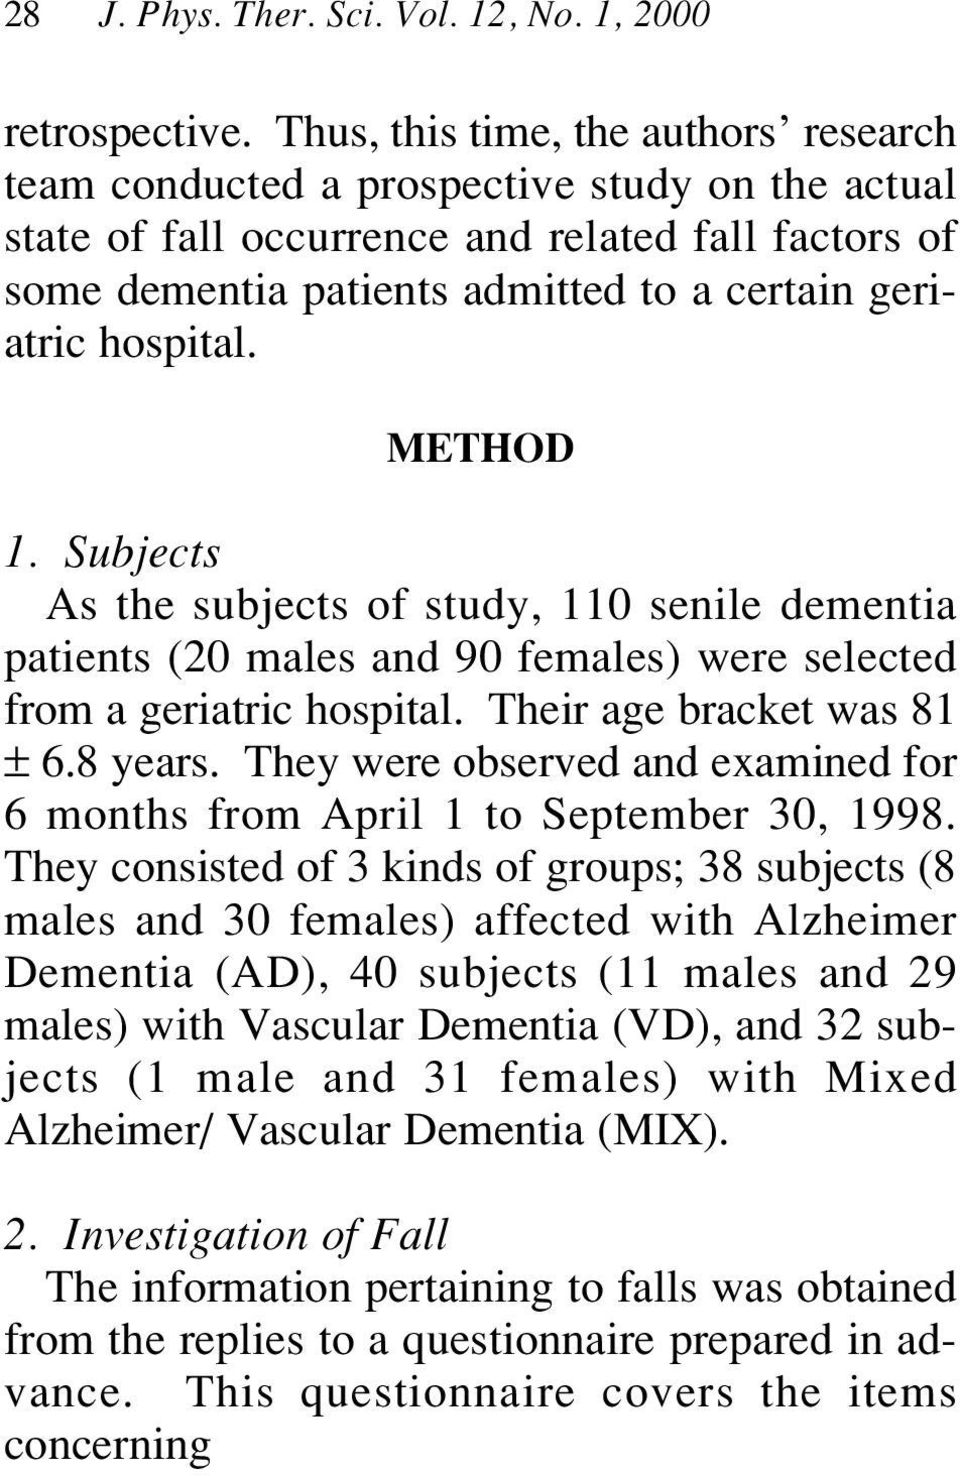 hospital. METHOD 1. Subjects As the subjects of study, 110 senile dementia patients (20 males and 90 females) were selected from a geriatric hospital. Their age bracket was 81 ± 6.8 years.